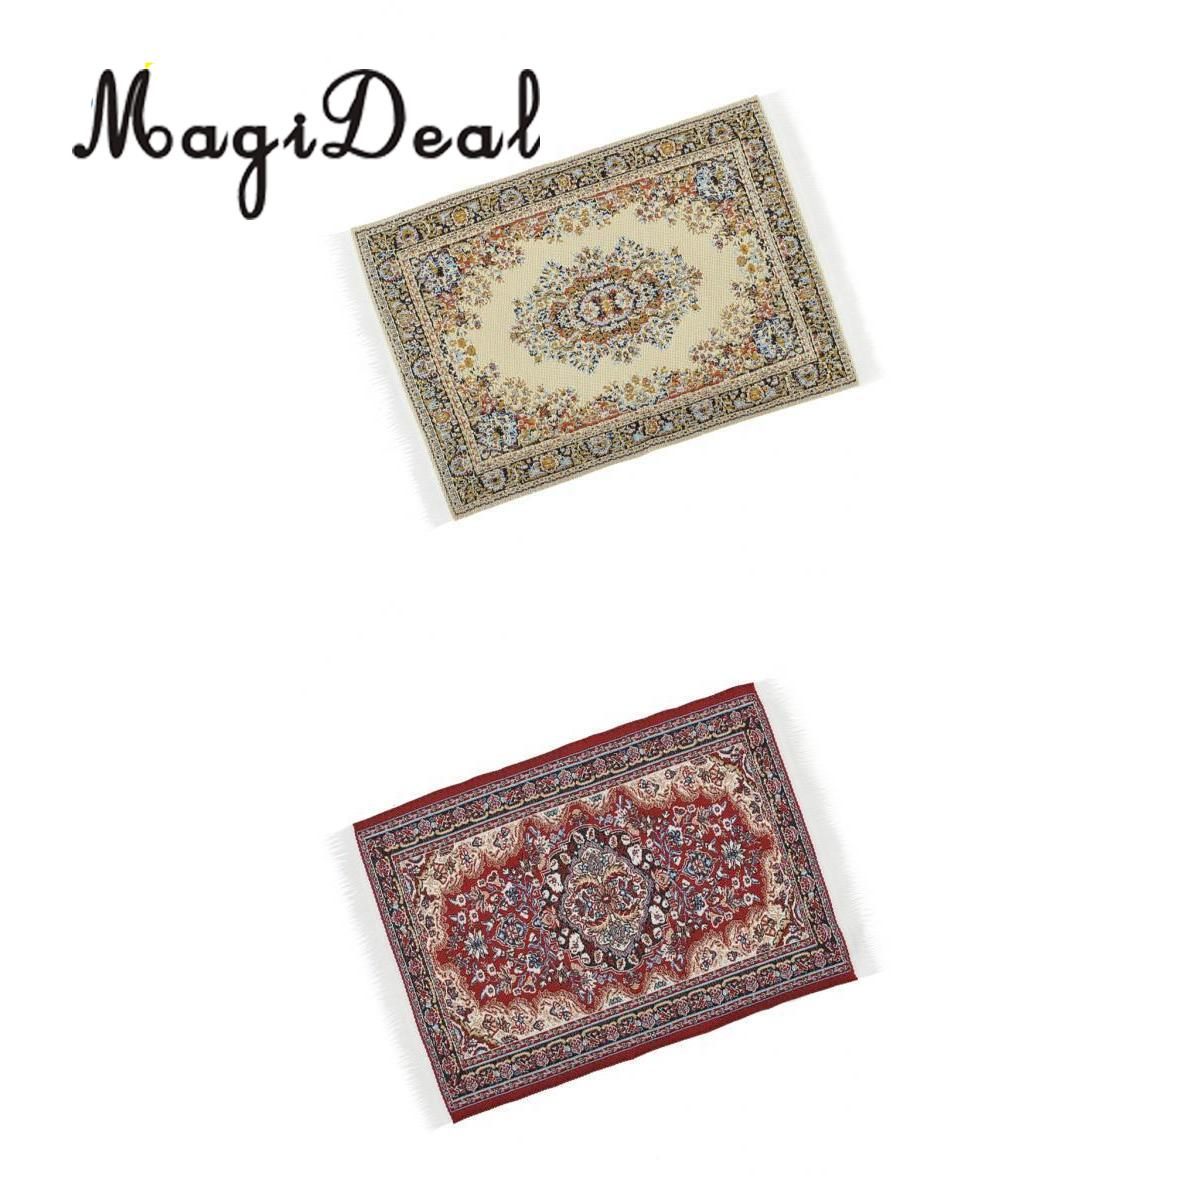 2Pcs 1/12 Scale Dollhouse MIniature Woven Rug Floor Carpet Dolls House Bedroom Living Room Furniture Decor Life Scenes